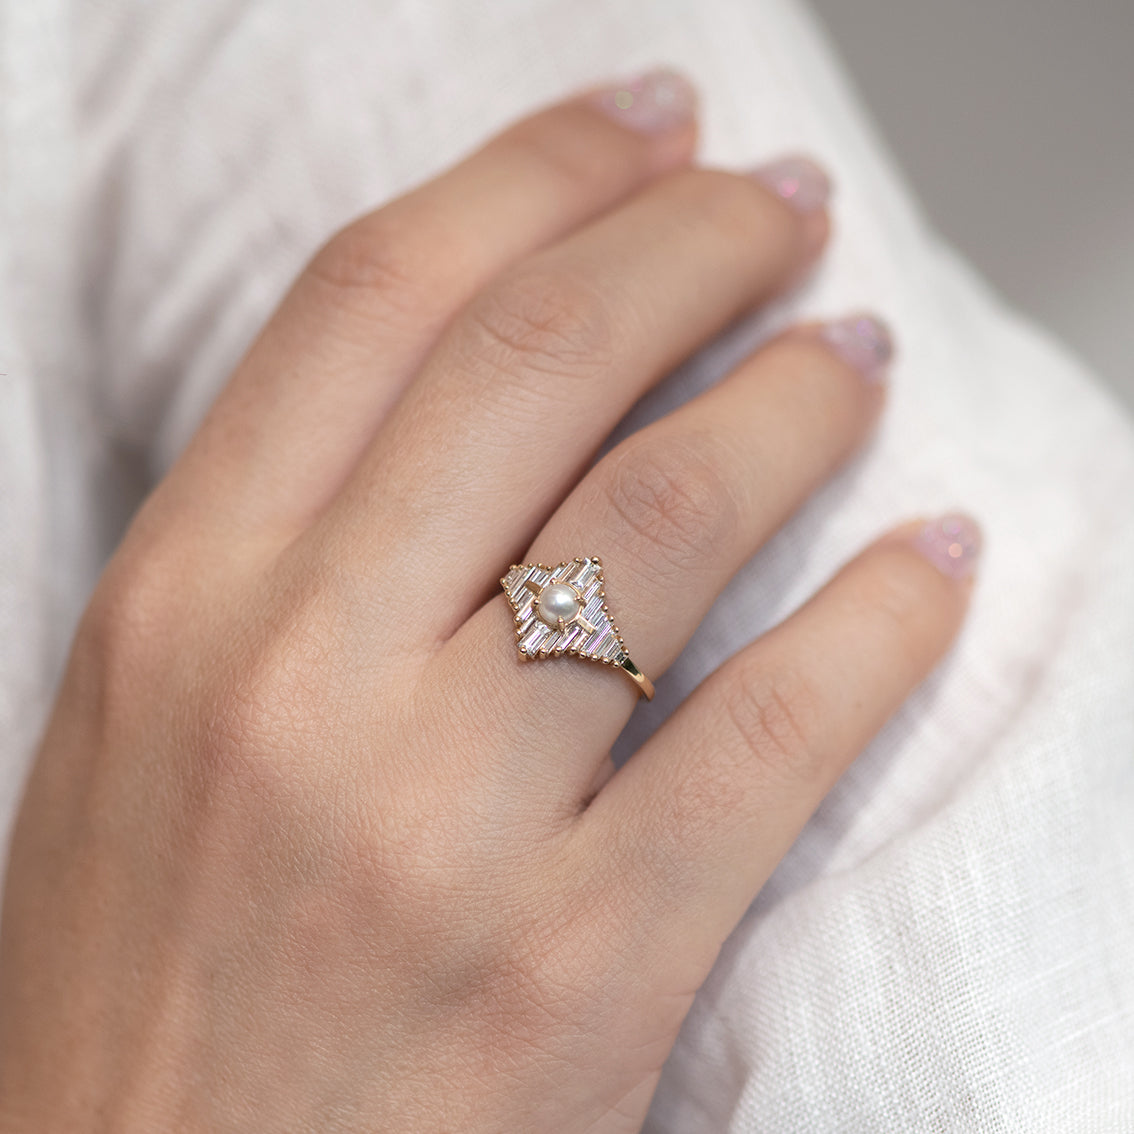 Star Diamond Engagement Ring with White Pearl New shot